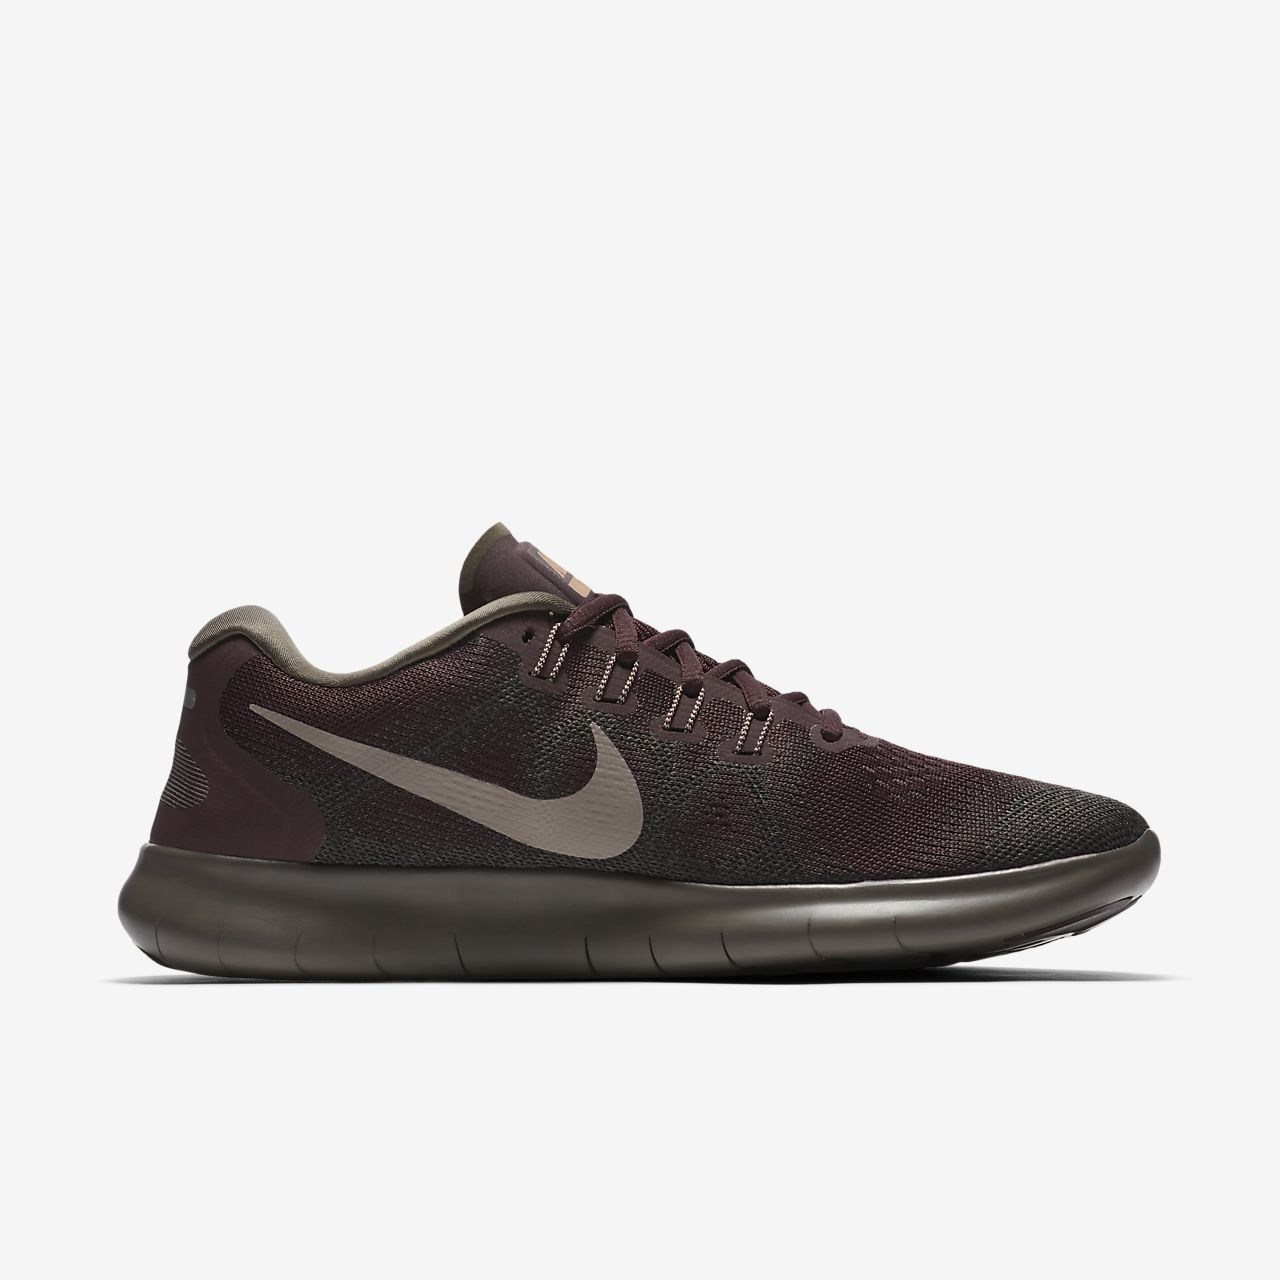 0b93fd85384 Nike Free Rn 2017   Buy Nike Shoes   Sneakers - Bluelilyandblue.com